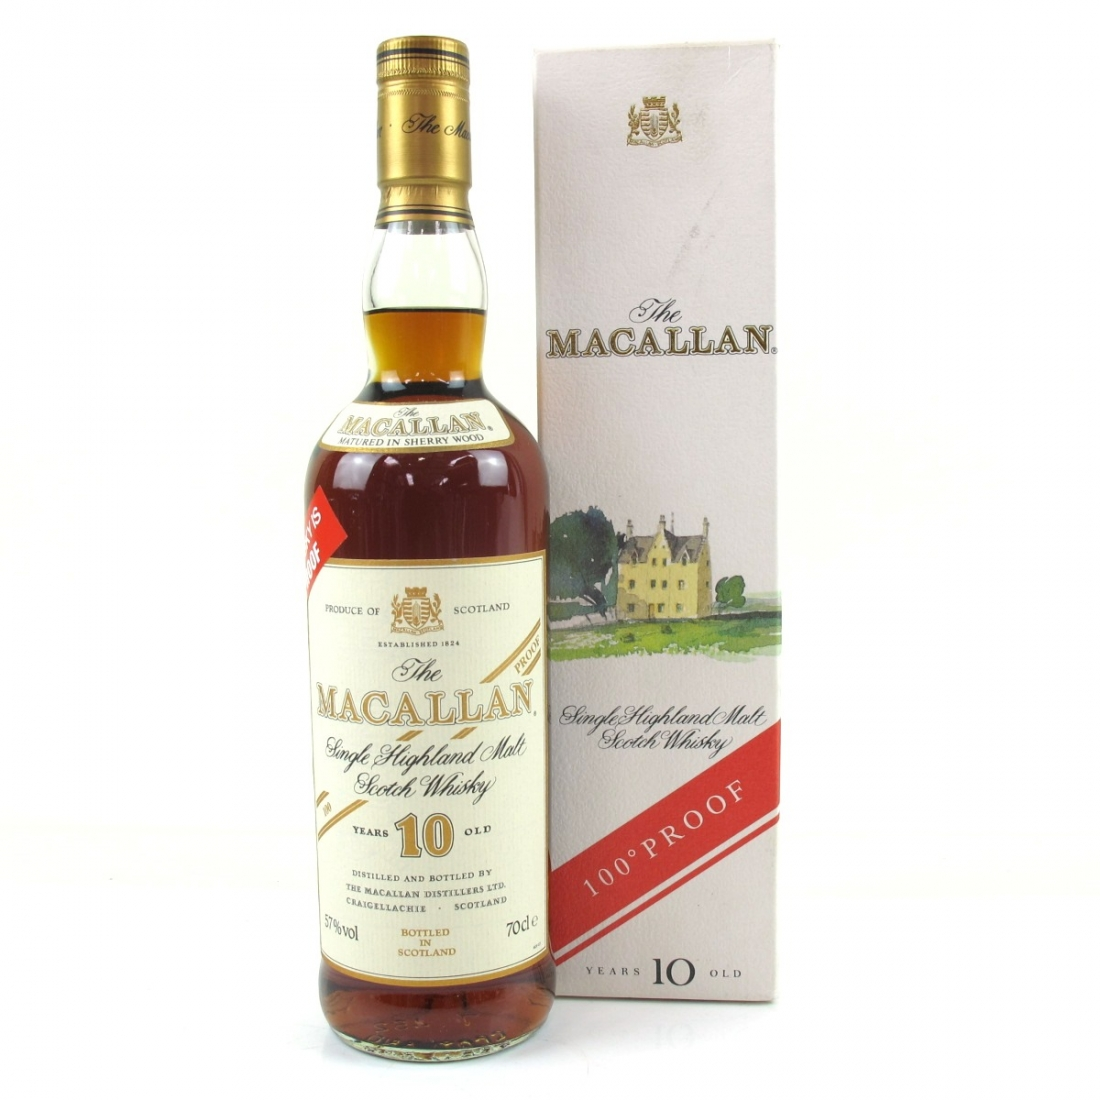 Macallan 10 Year Old 100 Proof 1990s